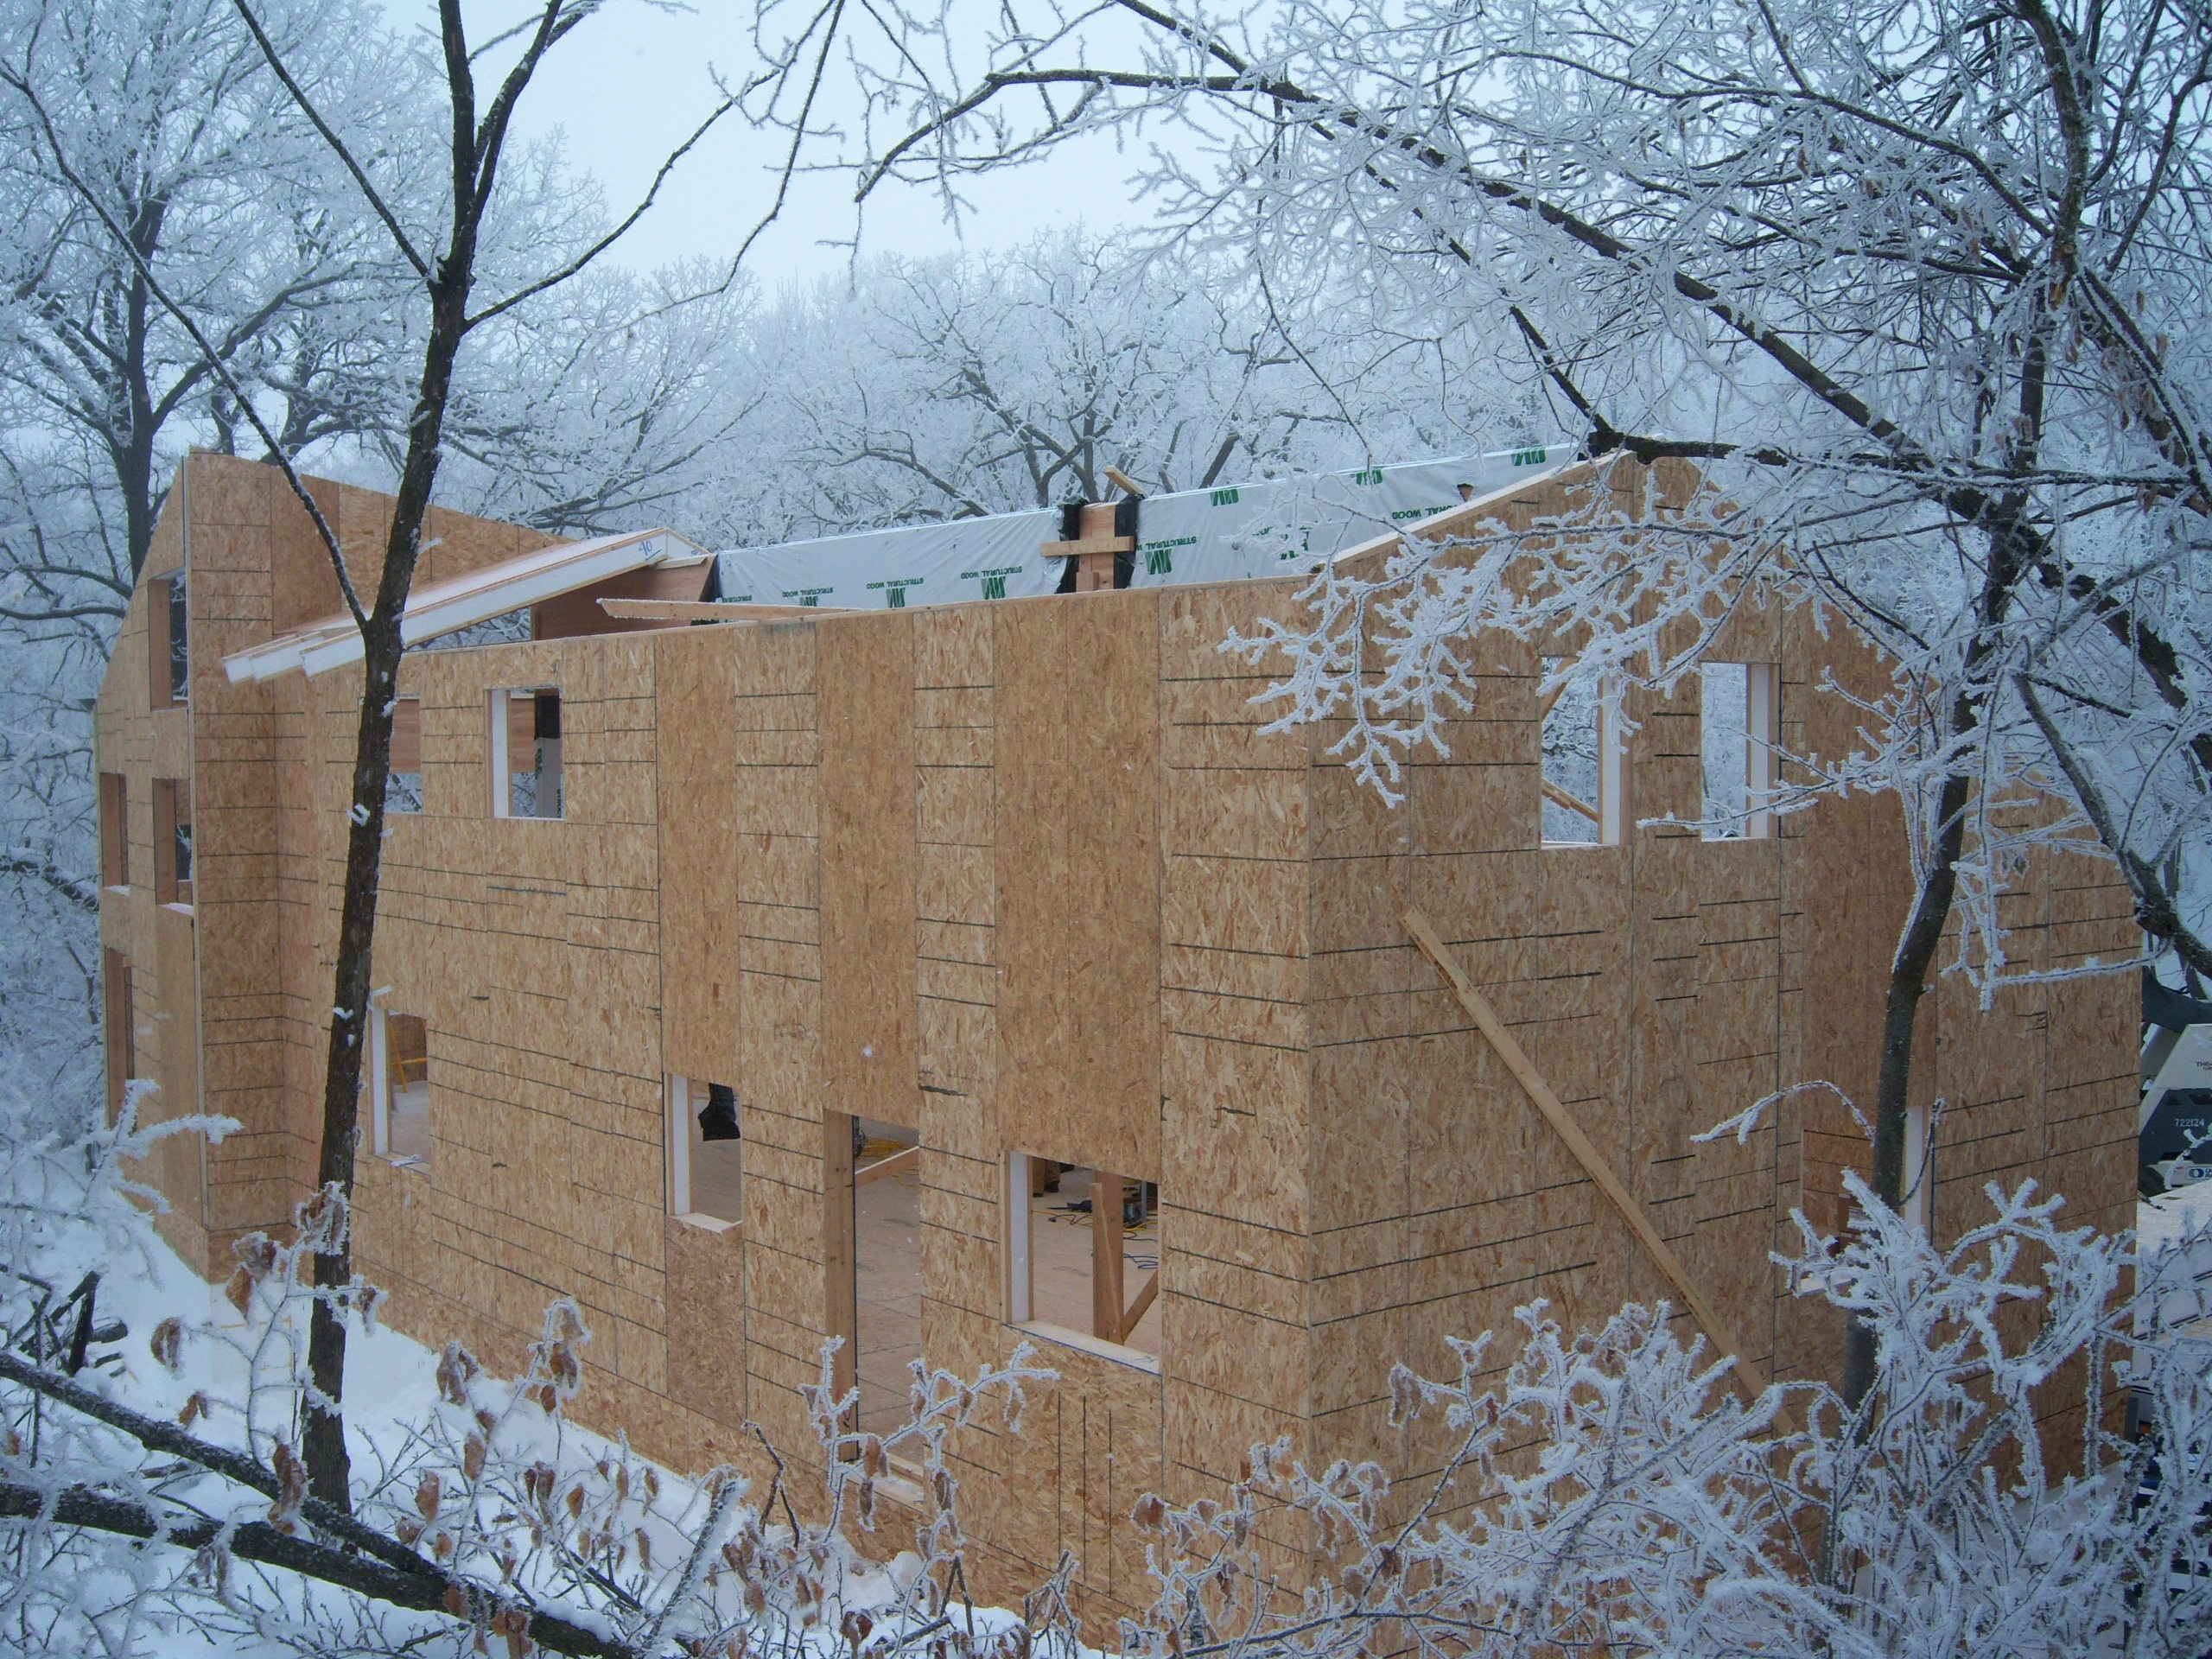 Winter Construction: More Cost-Effective and Comfortable With SIPs